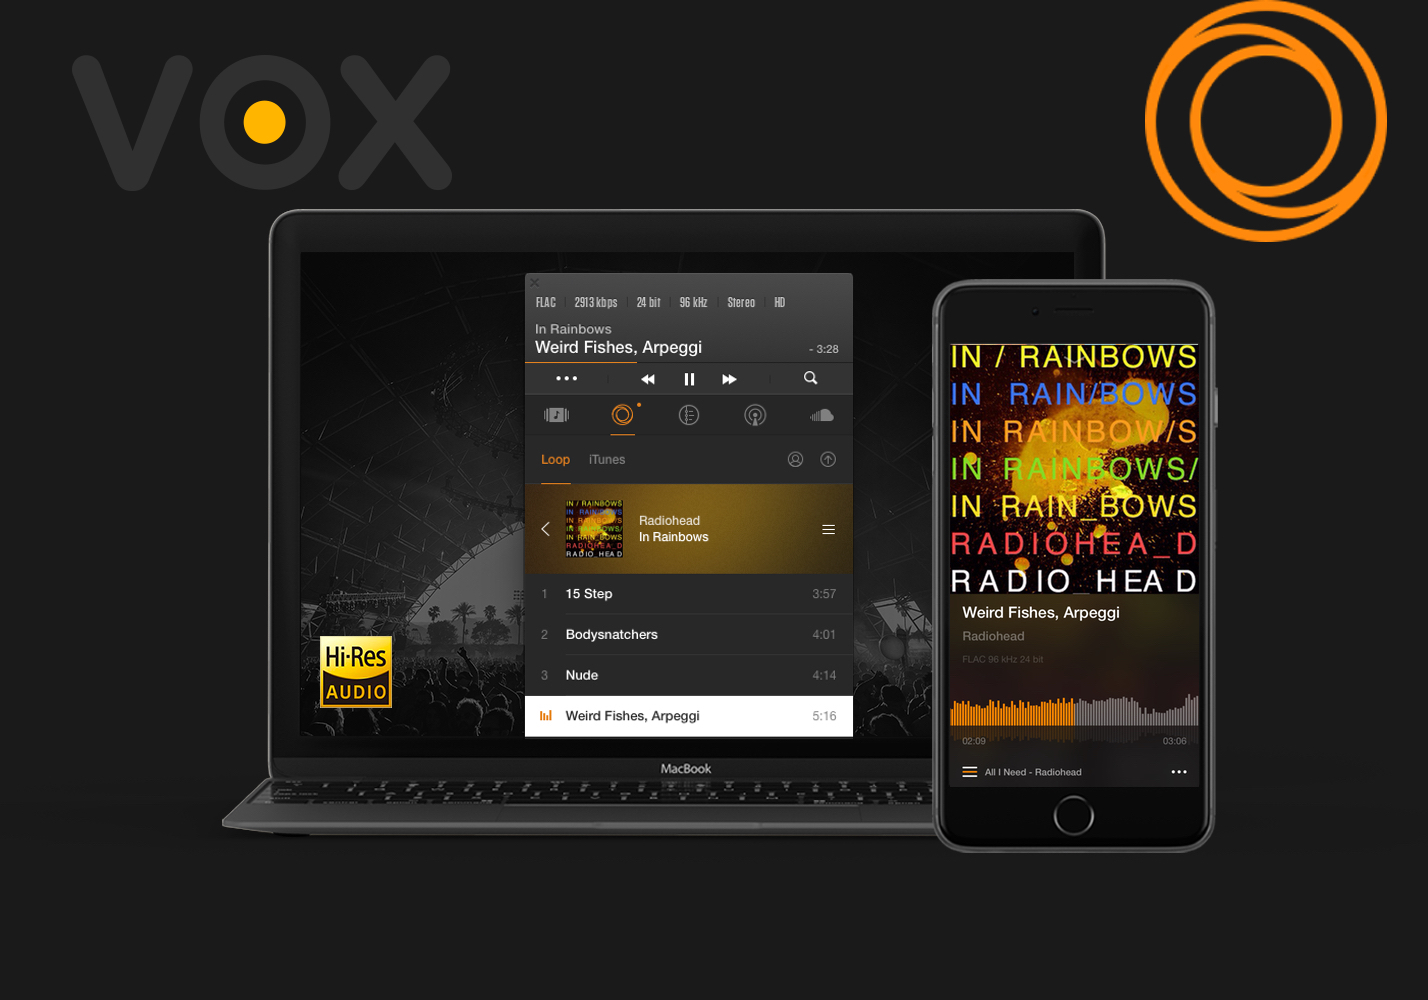 VOX Music Player open on Mac and iPhone with VOX and LOOP logos. VOX works as a great bass booster for you music.